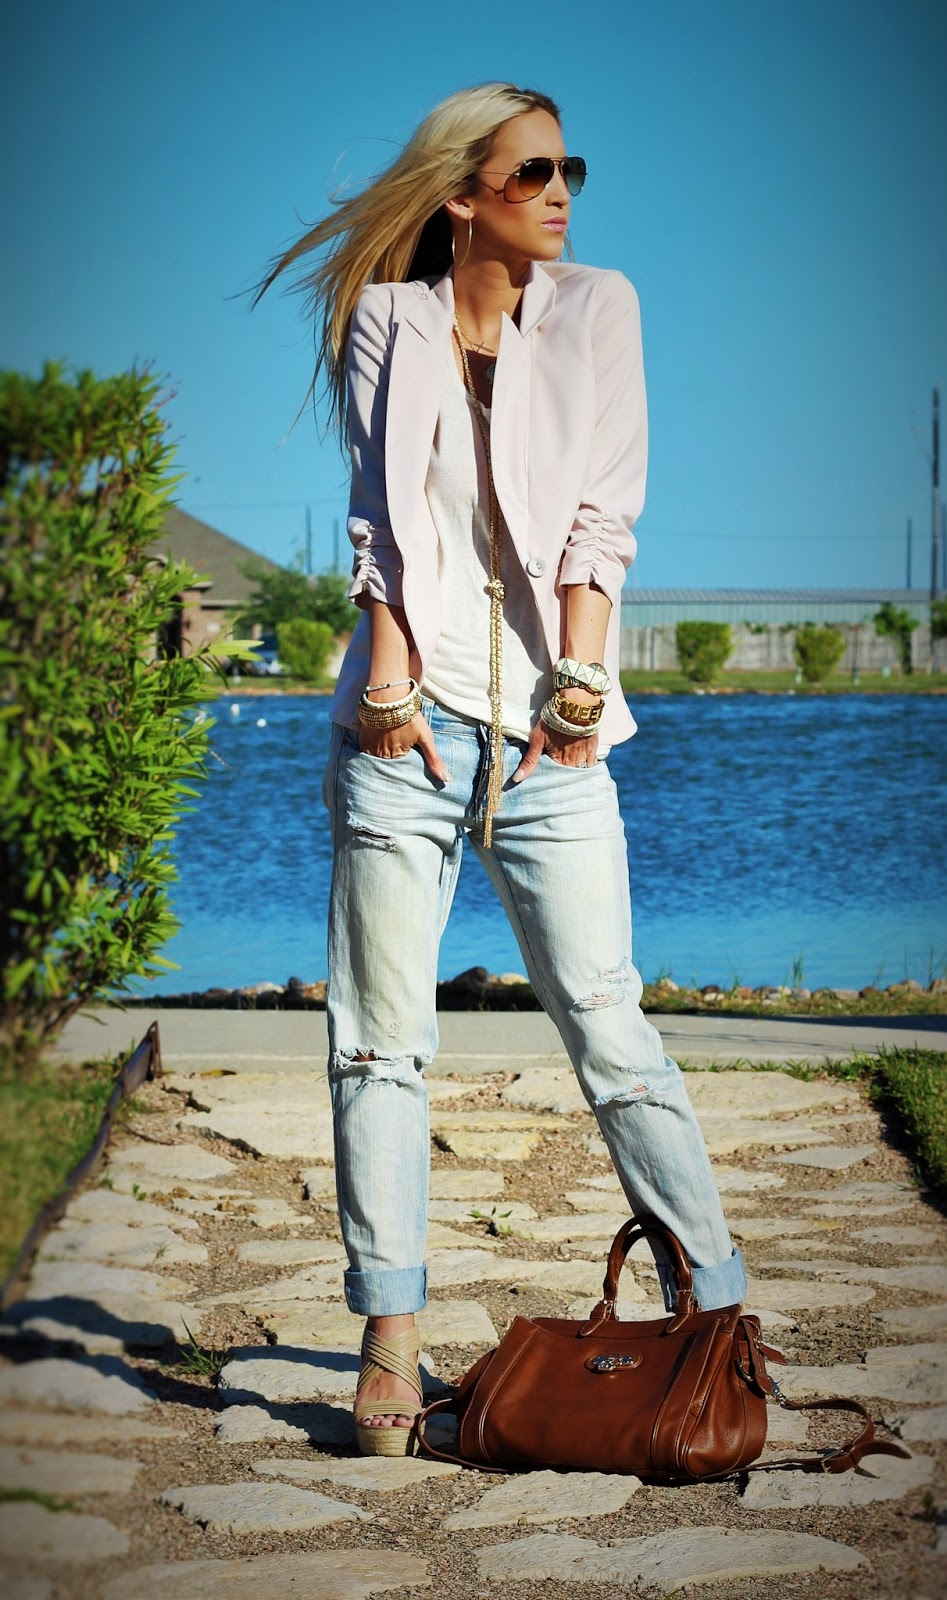 http://www.fabphilosophy.blogspot.com/2014/04/outfit-of-day-casually-layered.html